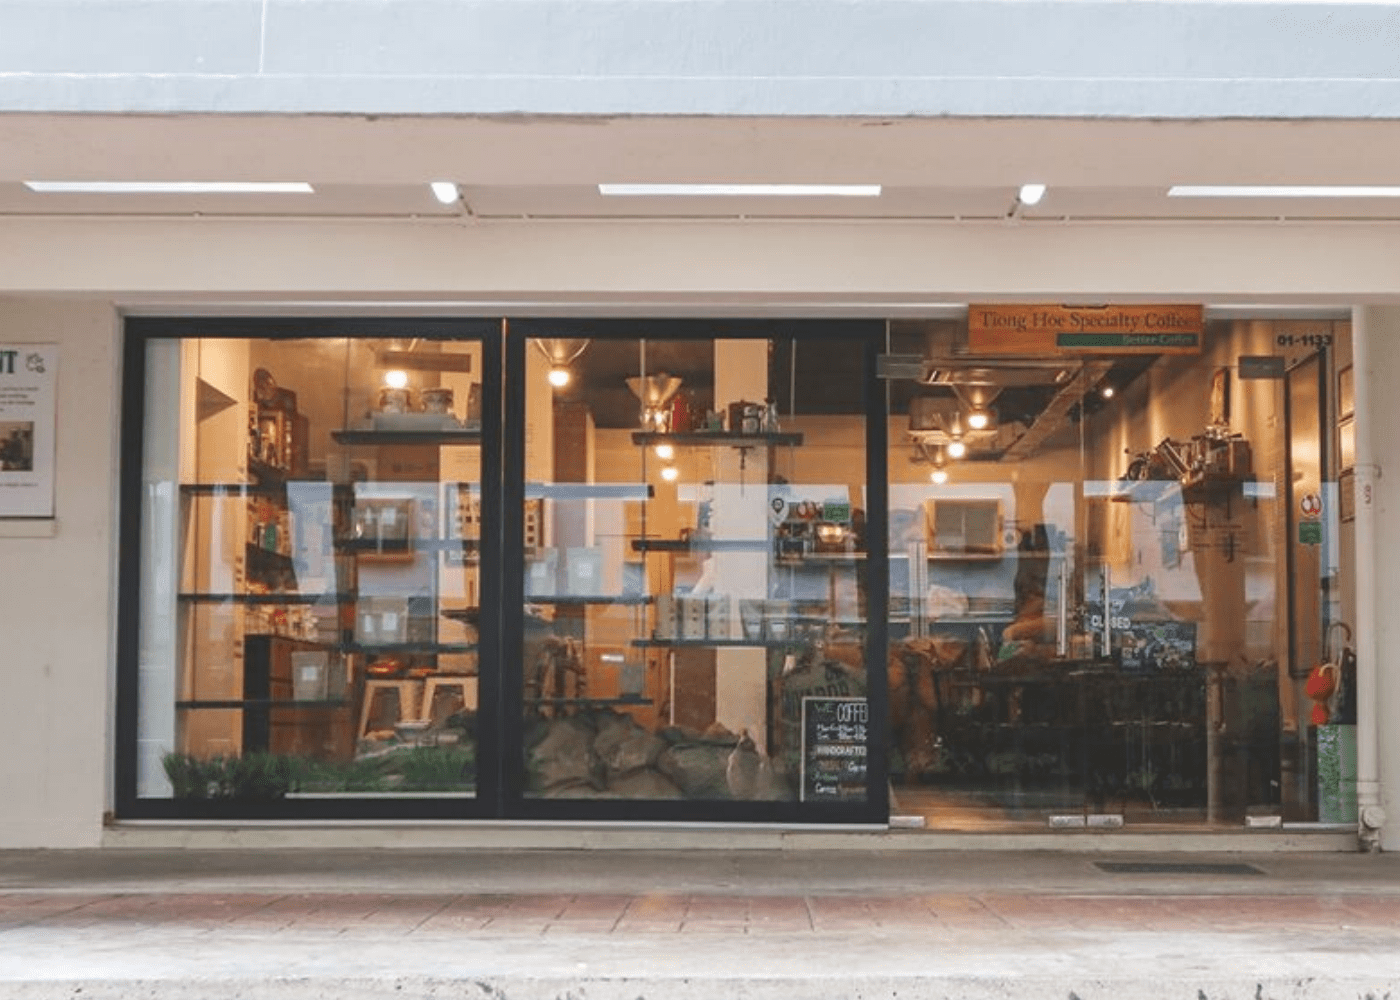 Tiong Hoe Speciality Coffee | Queenstown | Cool cafes in Singapore